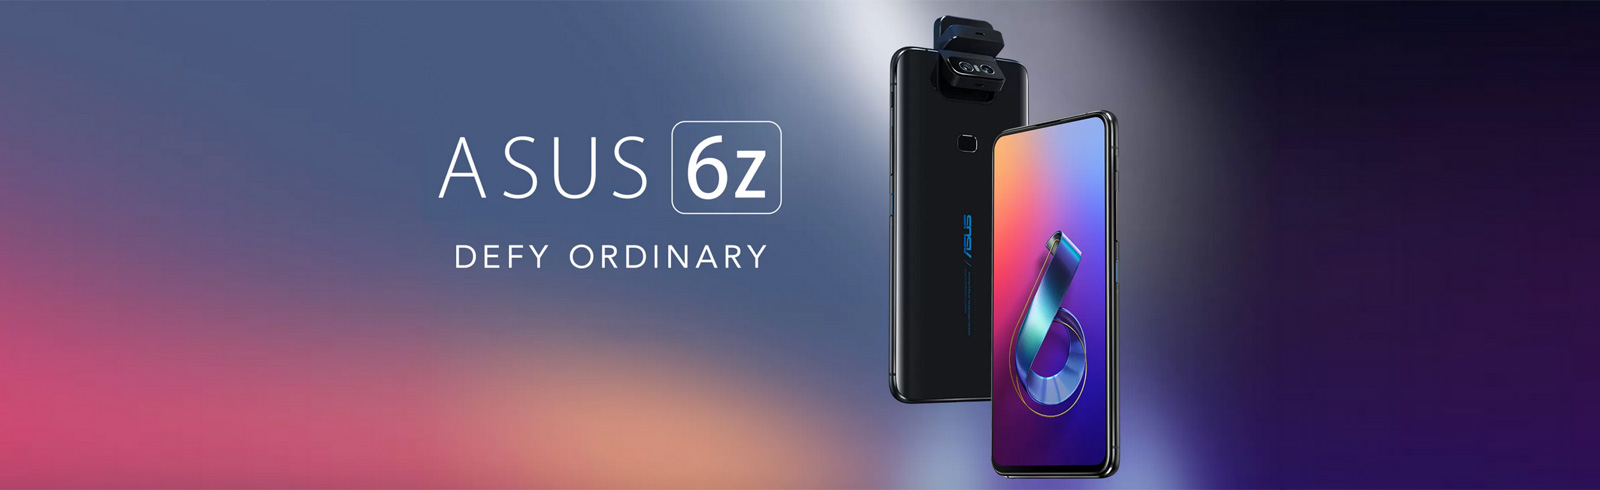 Asus will launch the Zenfone 6 in India as Asus 6z